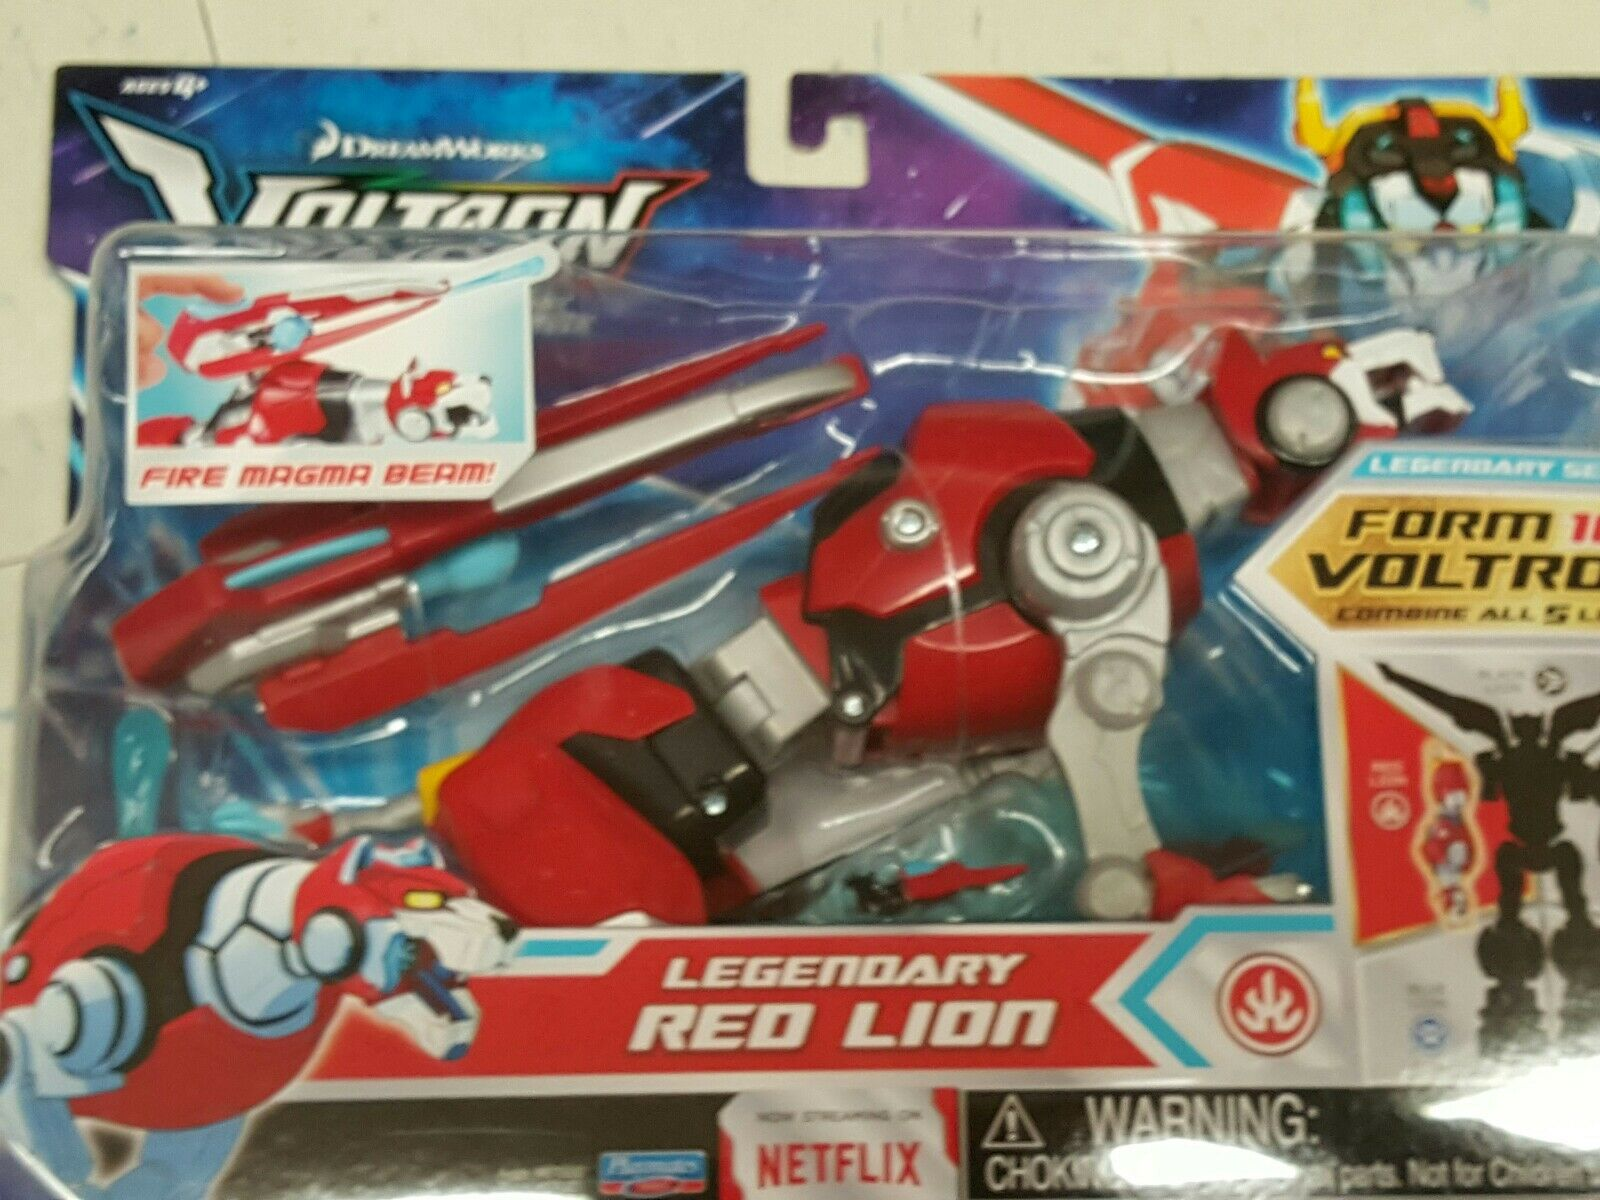 Legendary Voltron Red Lion  Limb combiner